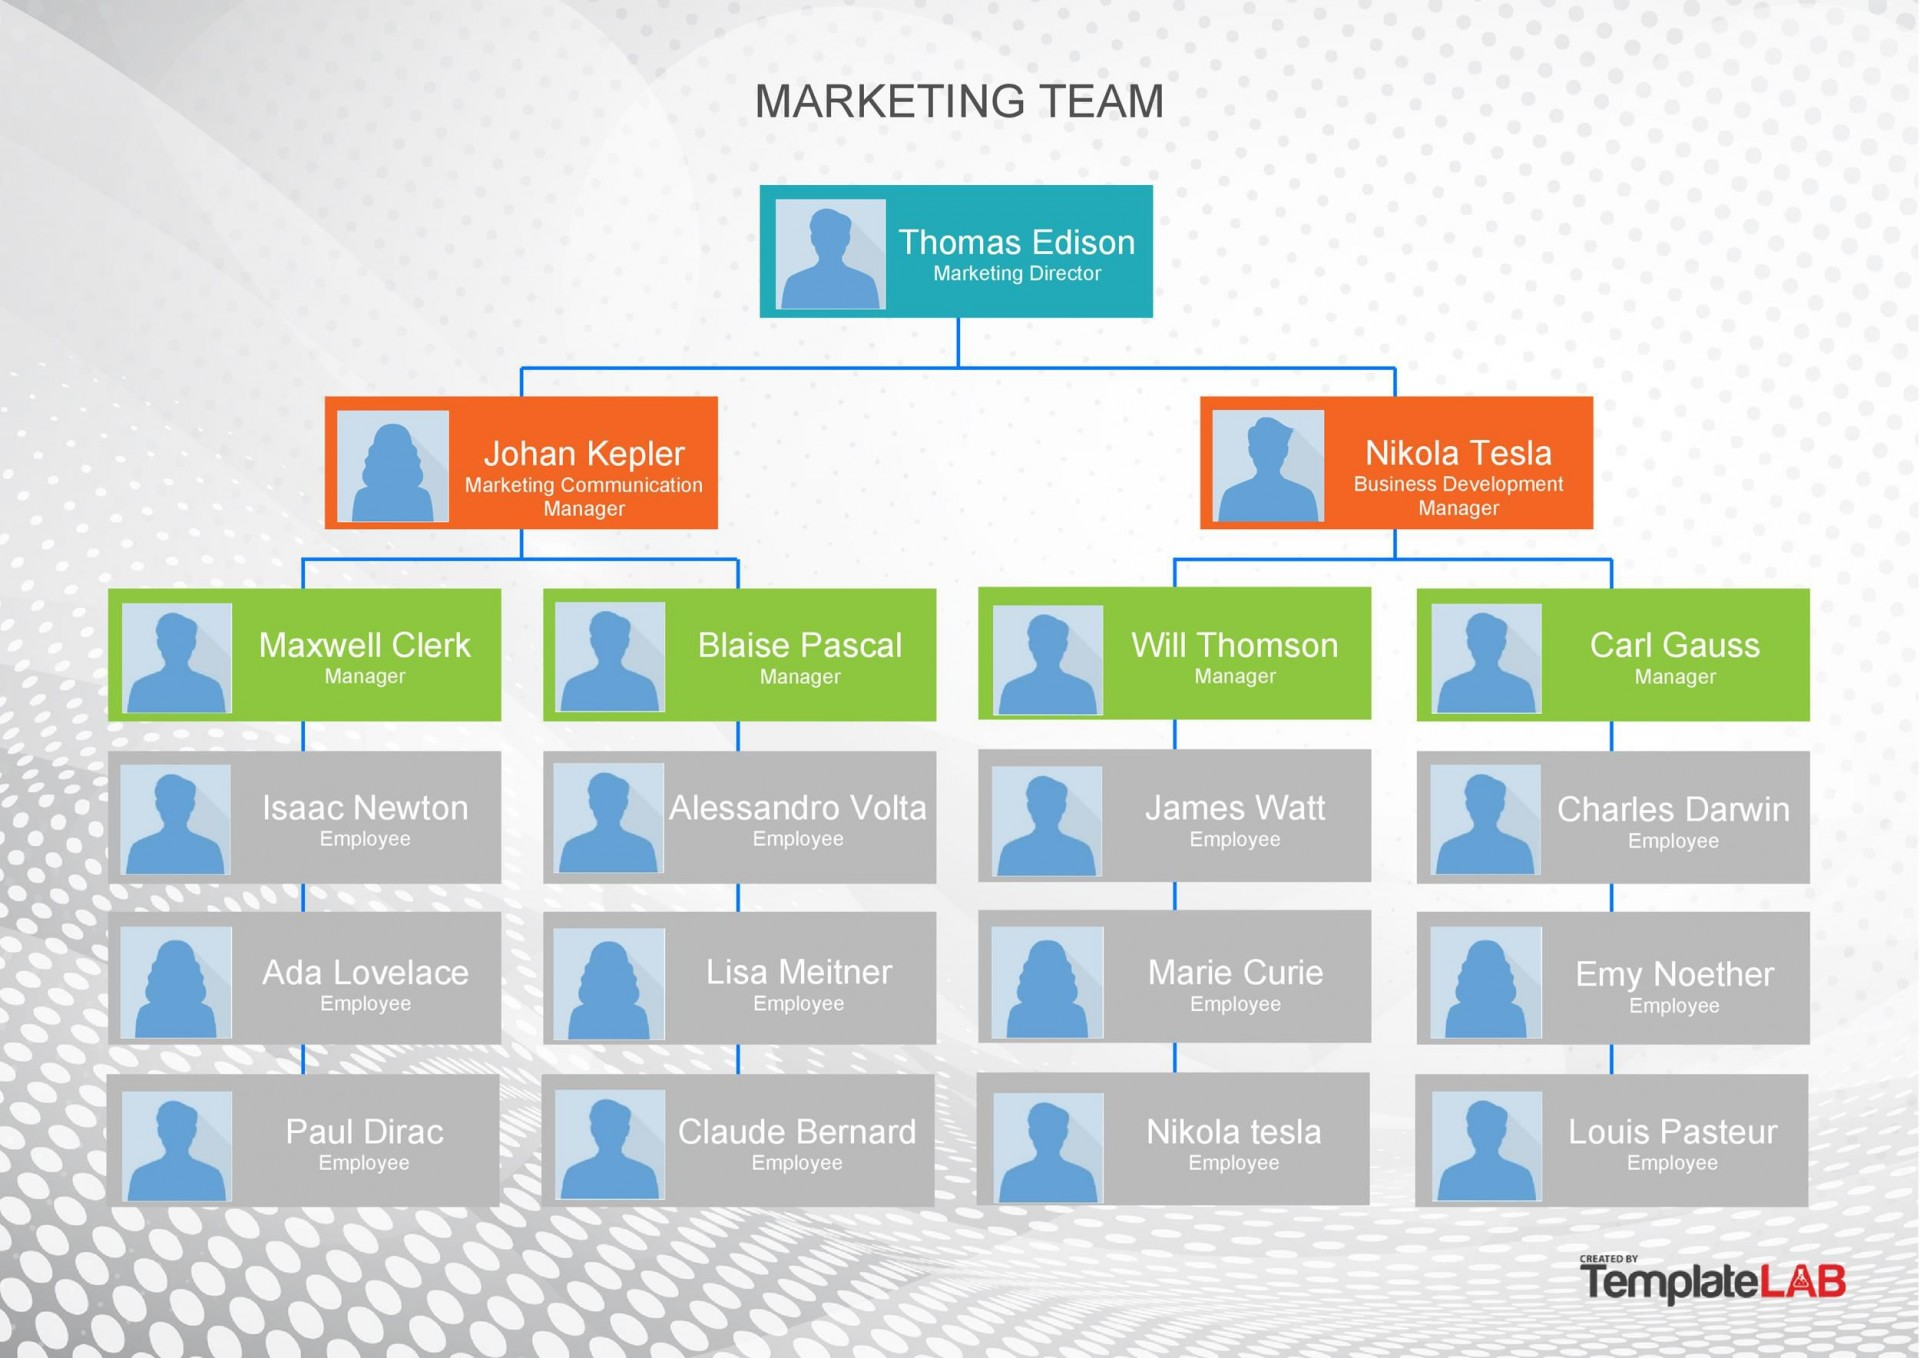 005 Archaicawful Organizational Chart Template Powerpoint Free Sample  Download 2010 Organization1920